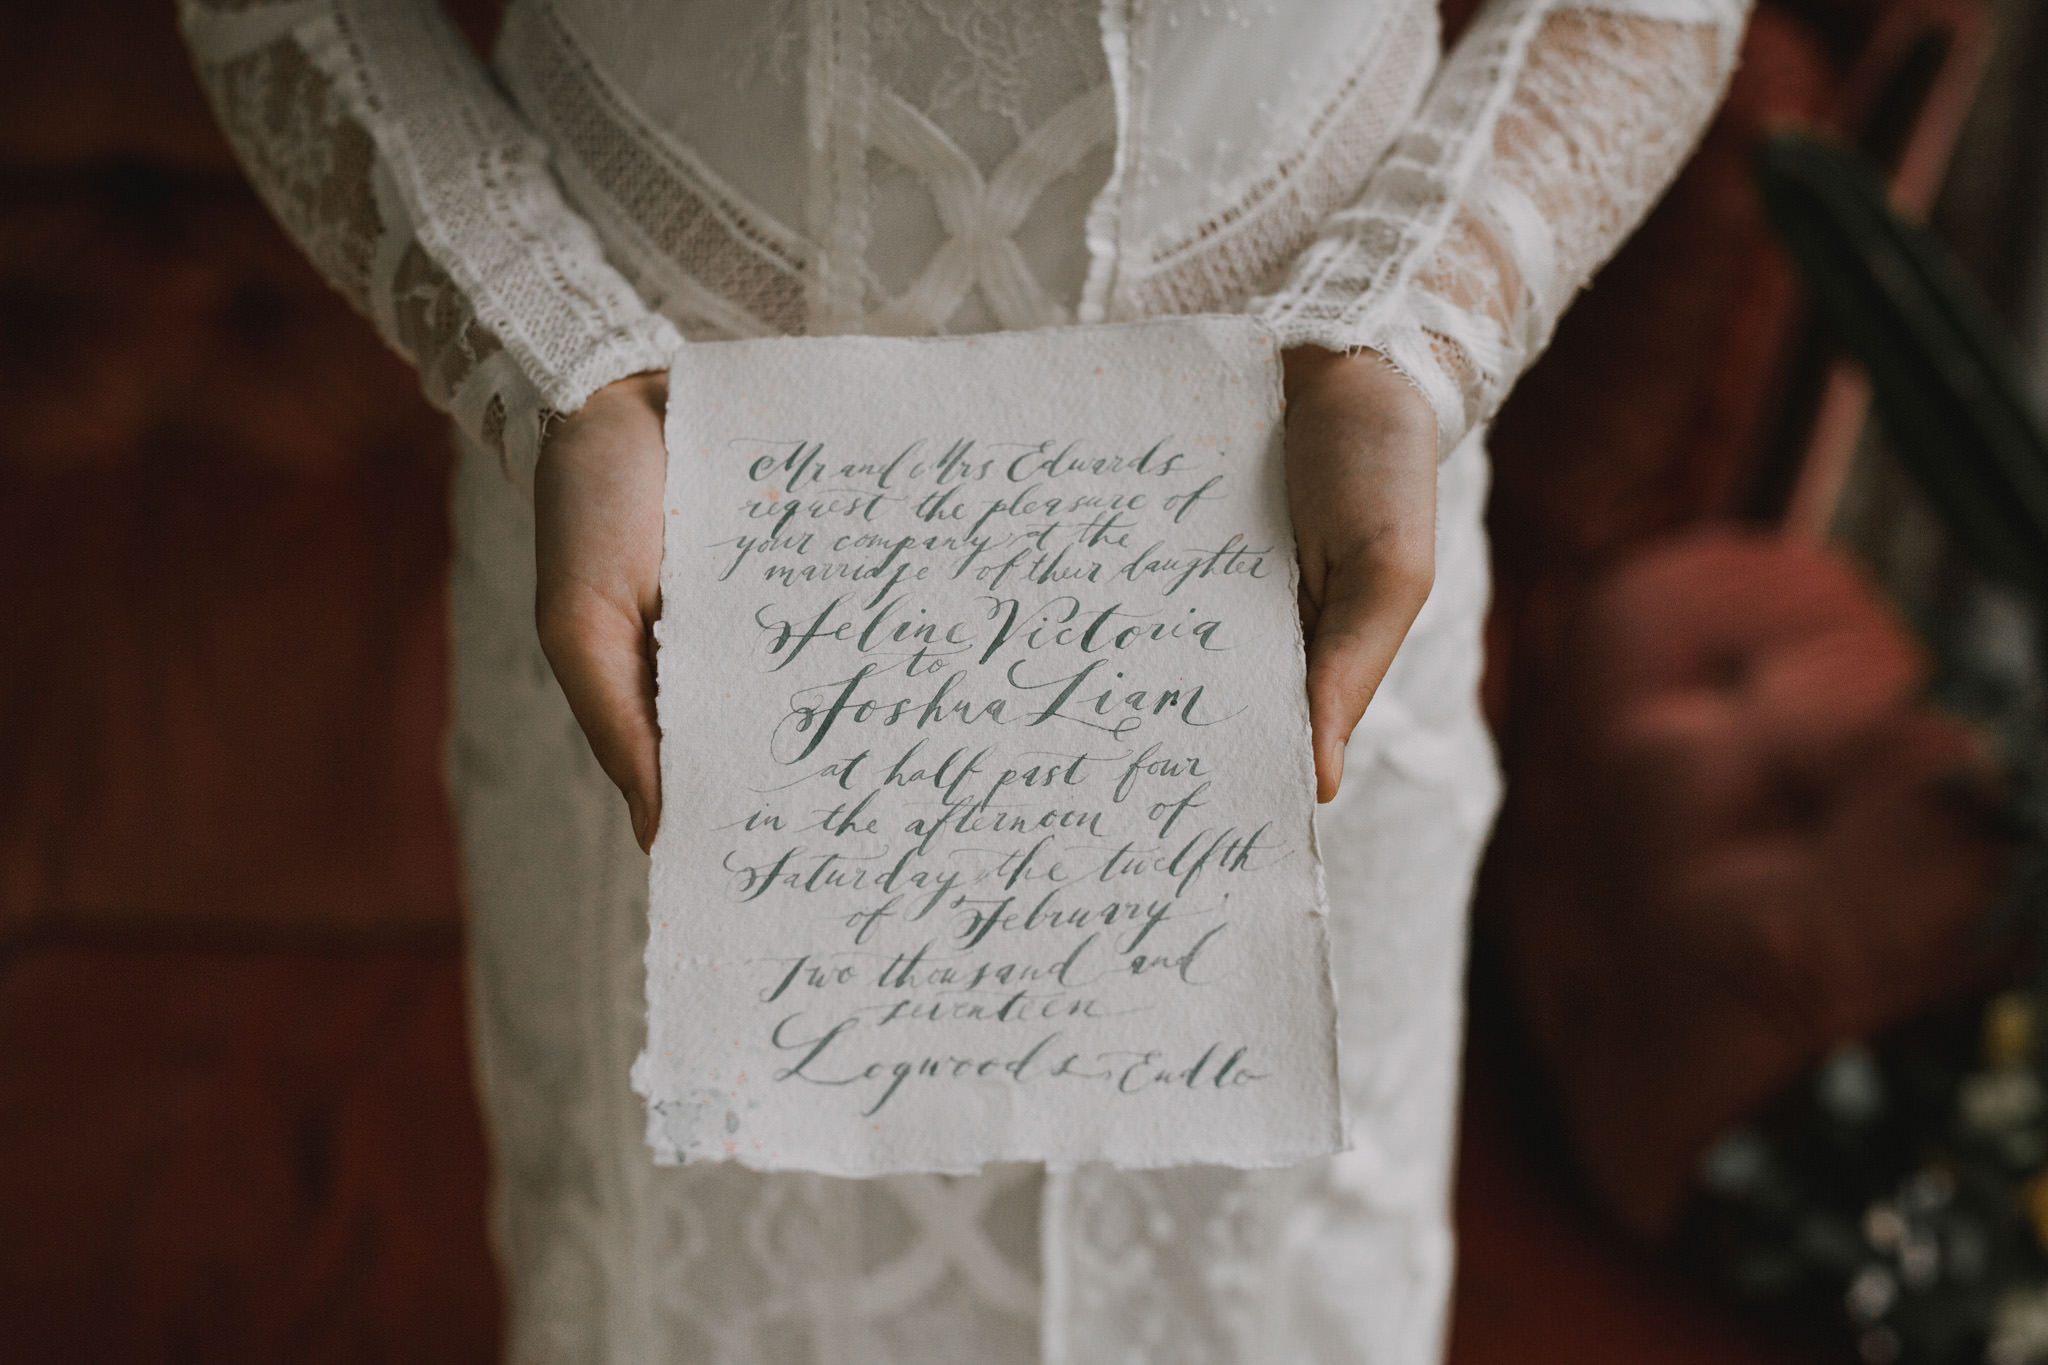 Wedding photography presets with brown tones for Lightroom and Adobe Photoshop by Sunshine Coast Wedding Photographer Shae Estella Photo